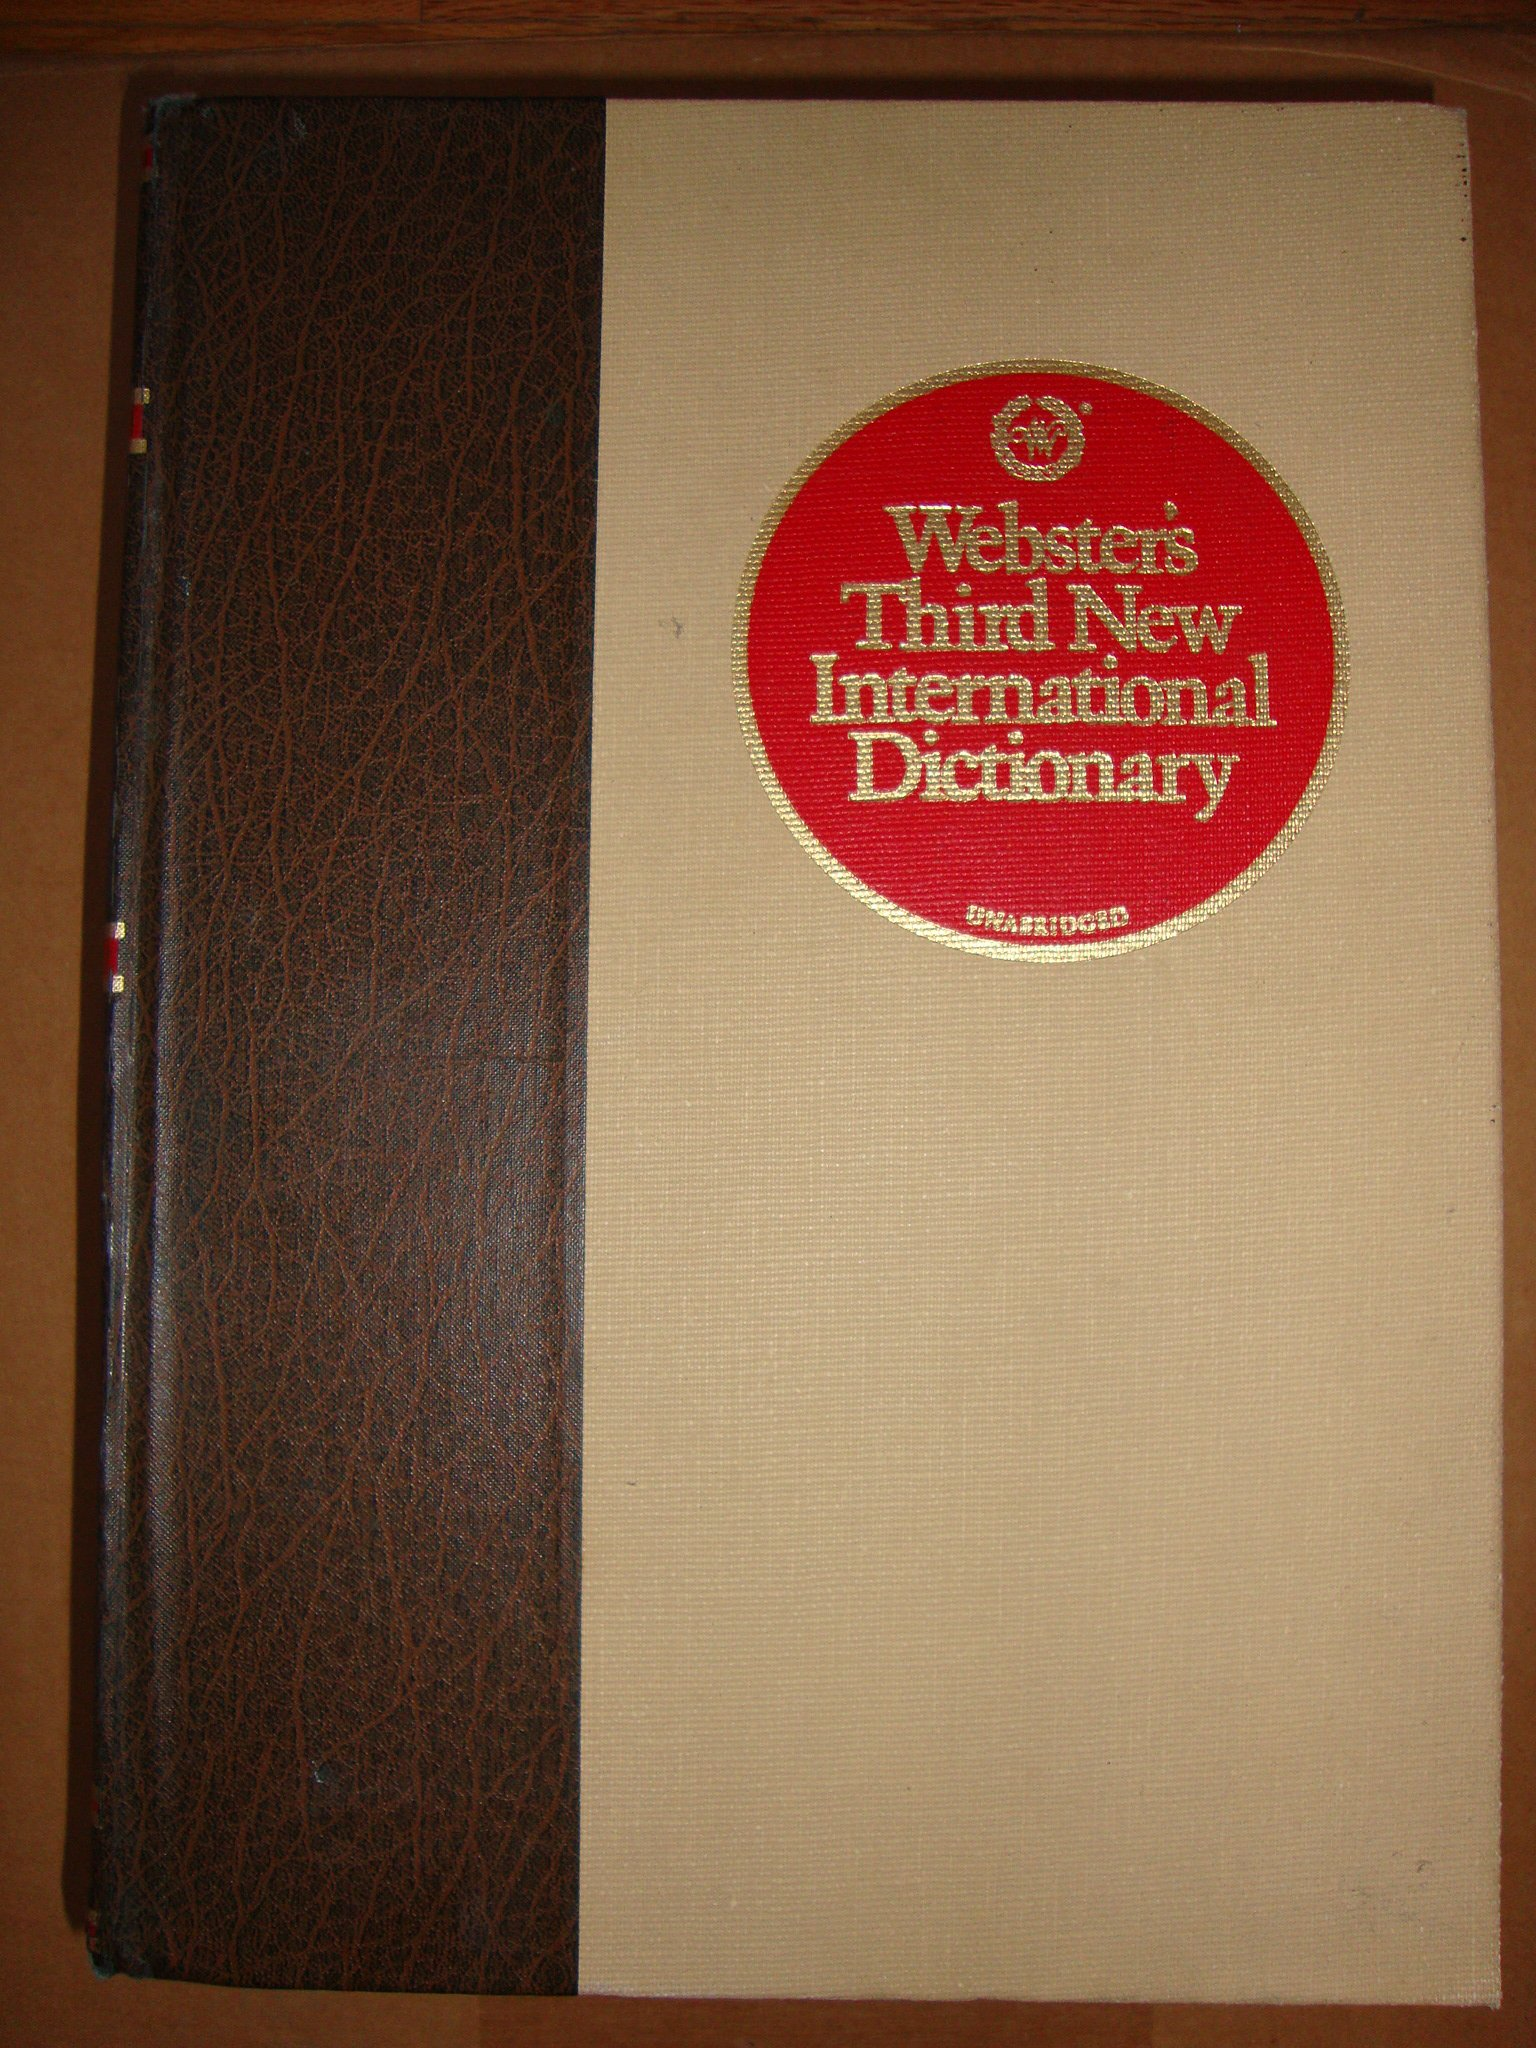 Webster's Third New International Dictionary of the English Language,  Unabridged Hardcover – 1976